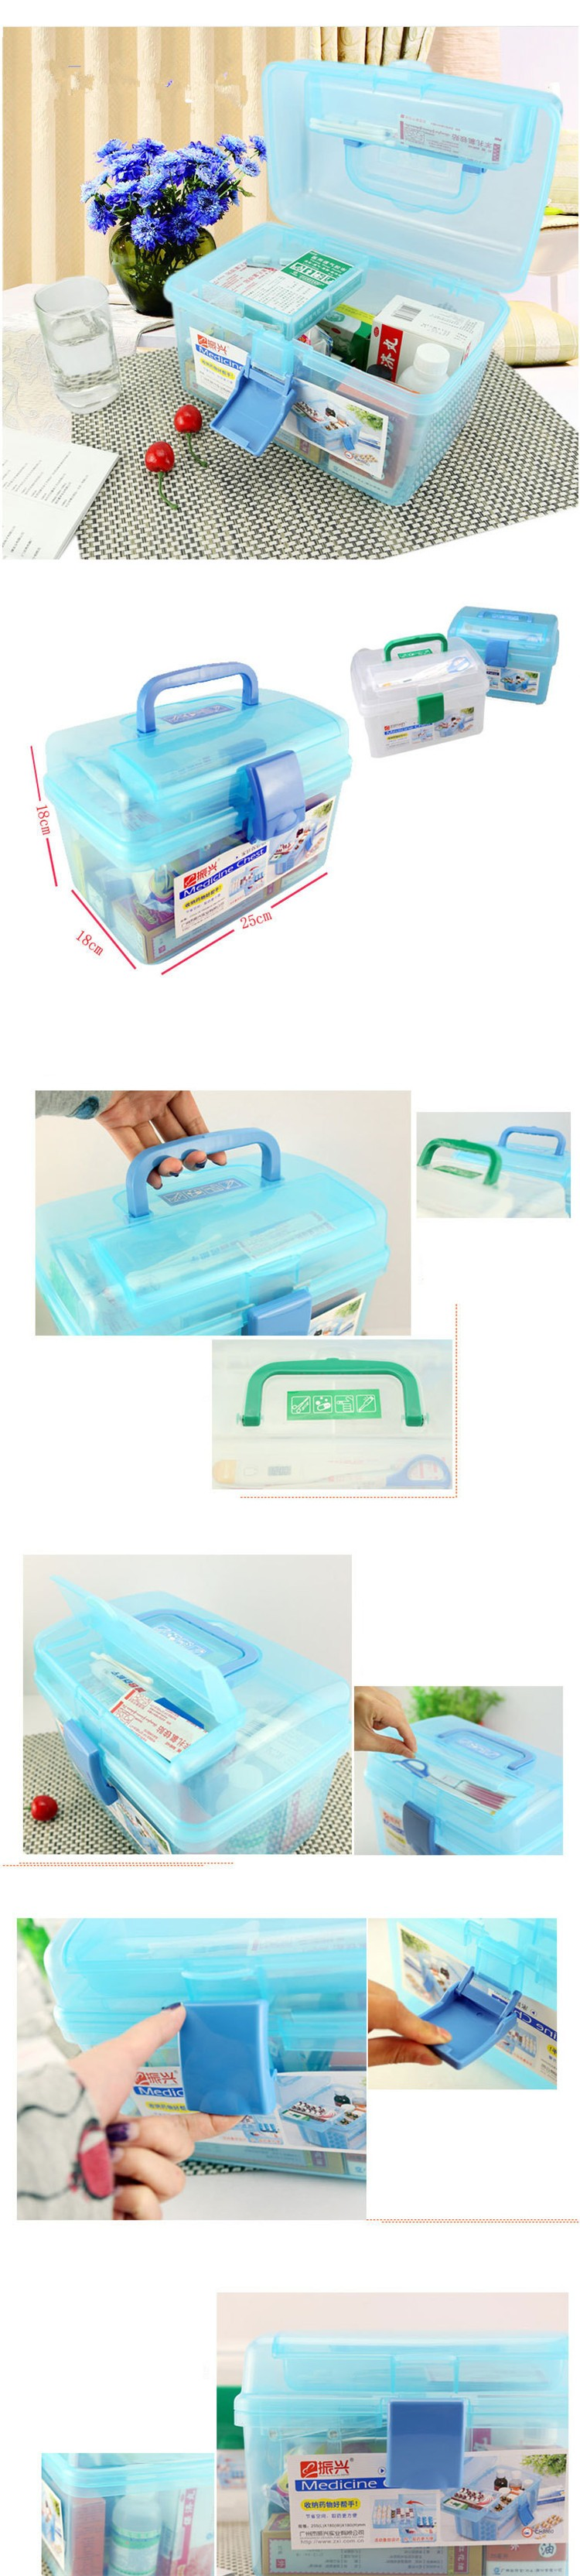 Extra Large Household Multi Layer First ᗑ Aid Aid Kit Multifunctional ヾ ノ Medicine Medicine